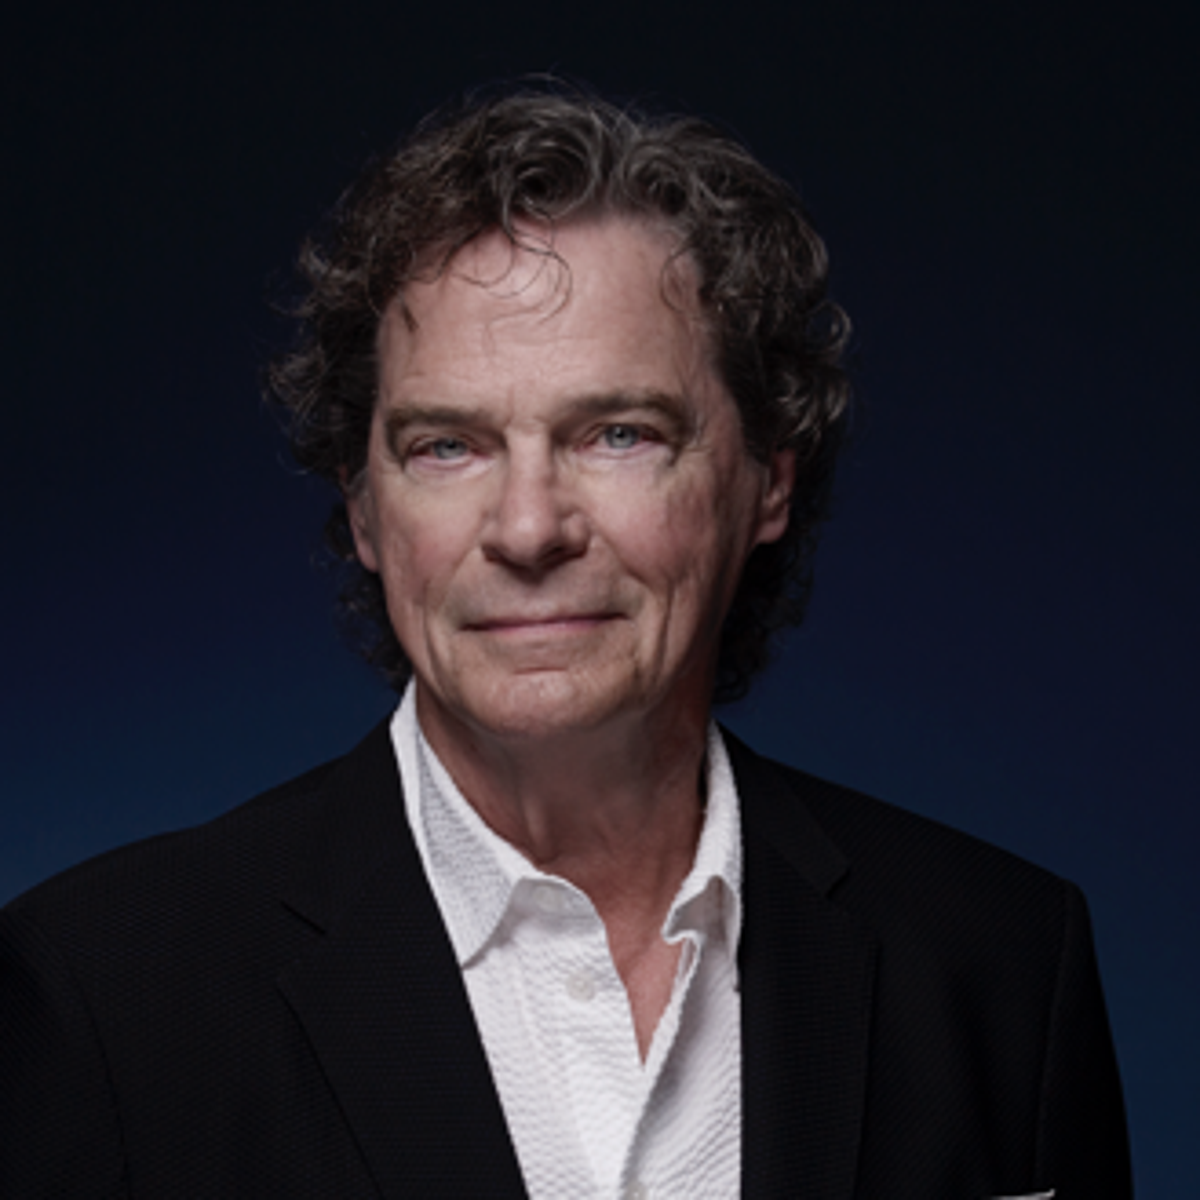 The 78-year old son of father (?) and mother(?) B. J. Thomas in 2021 photo. B. J. Thomas earned a  million dollar salary - leaving the net worth at  million in 2021